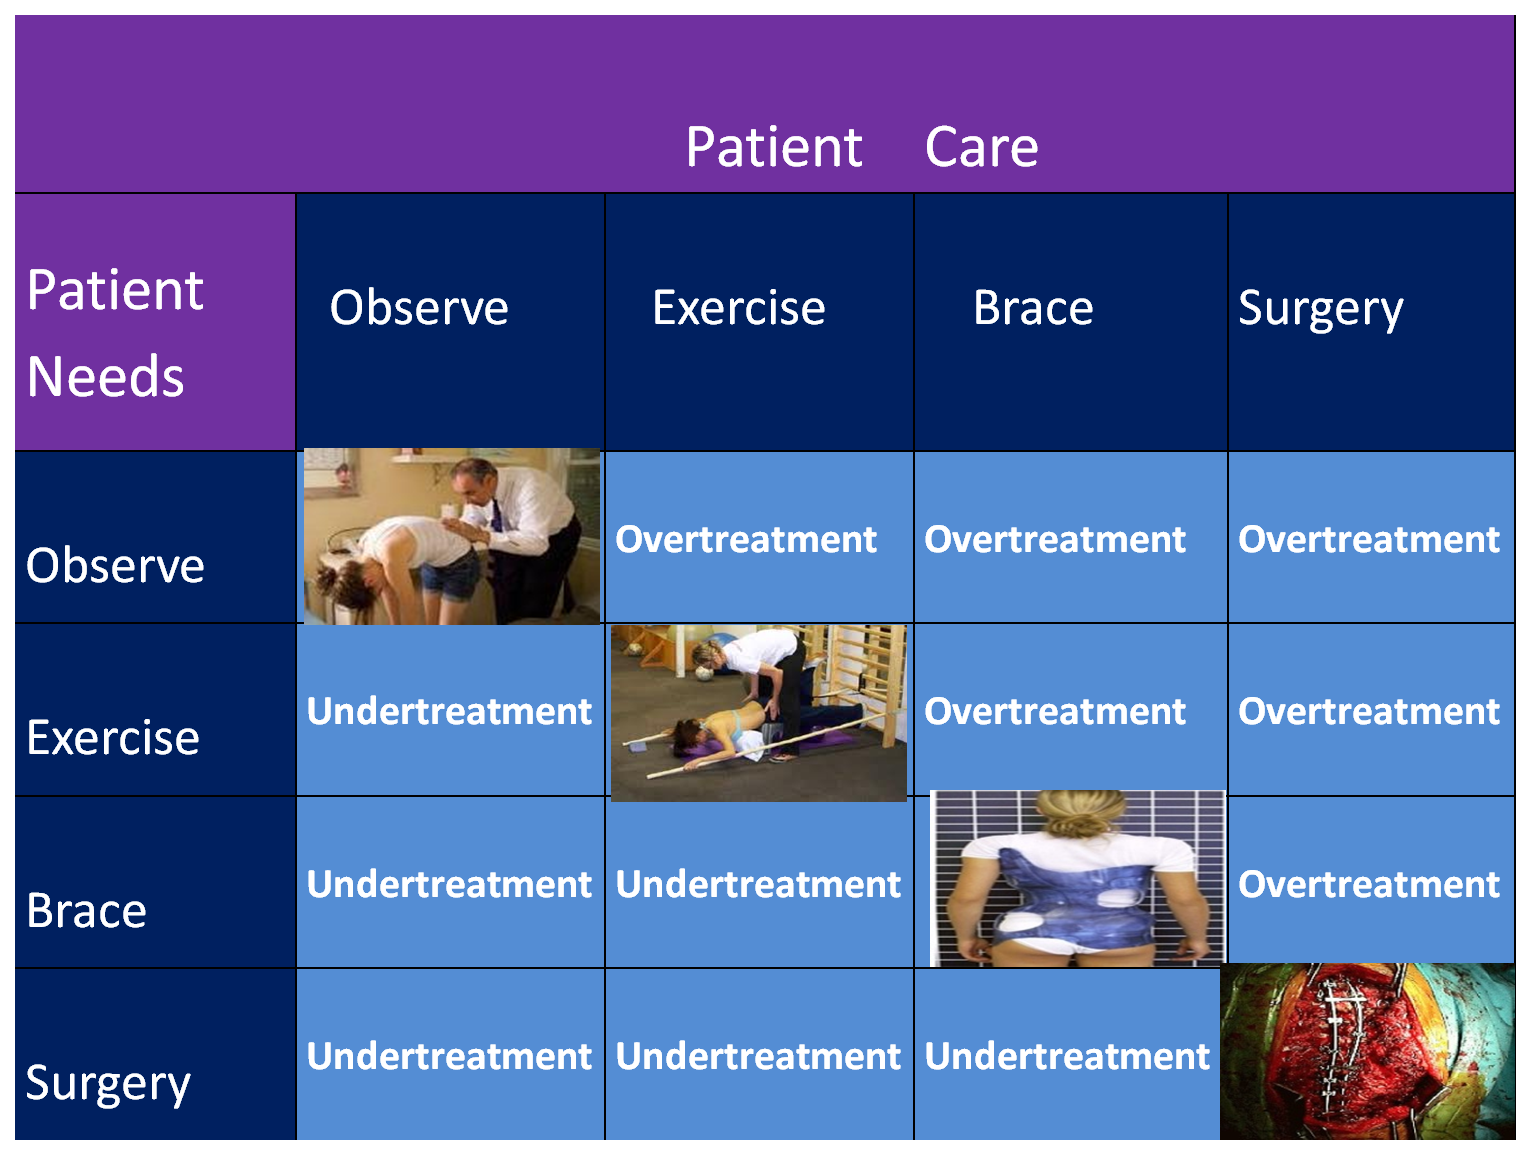 Overtreatment diagram